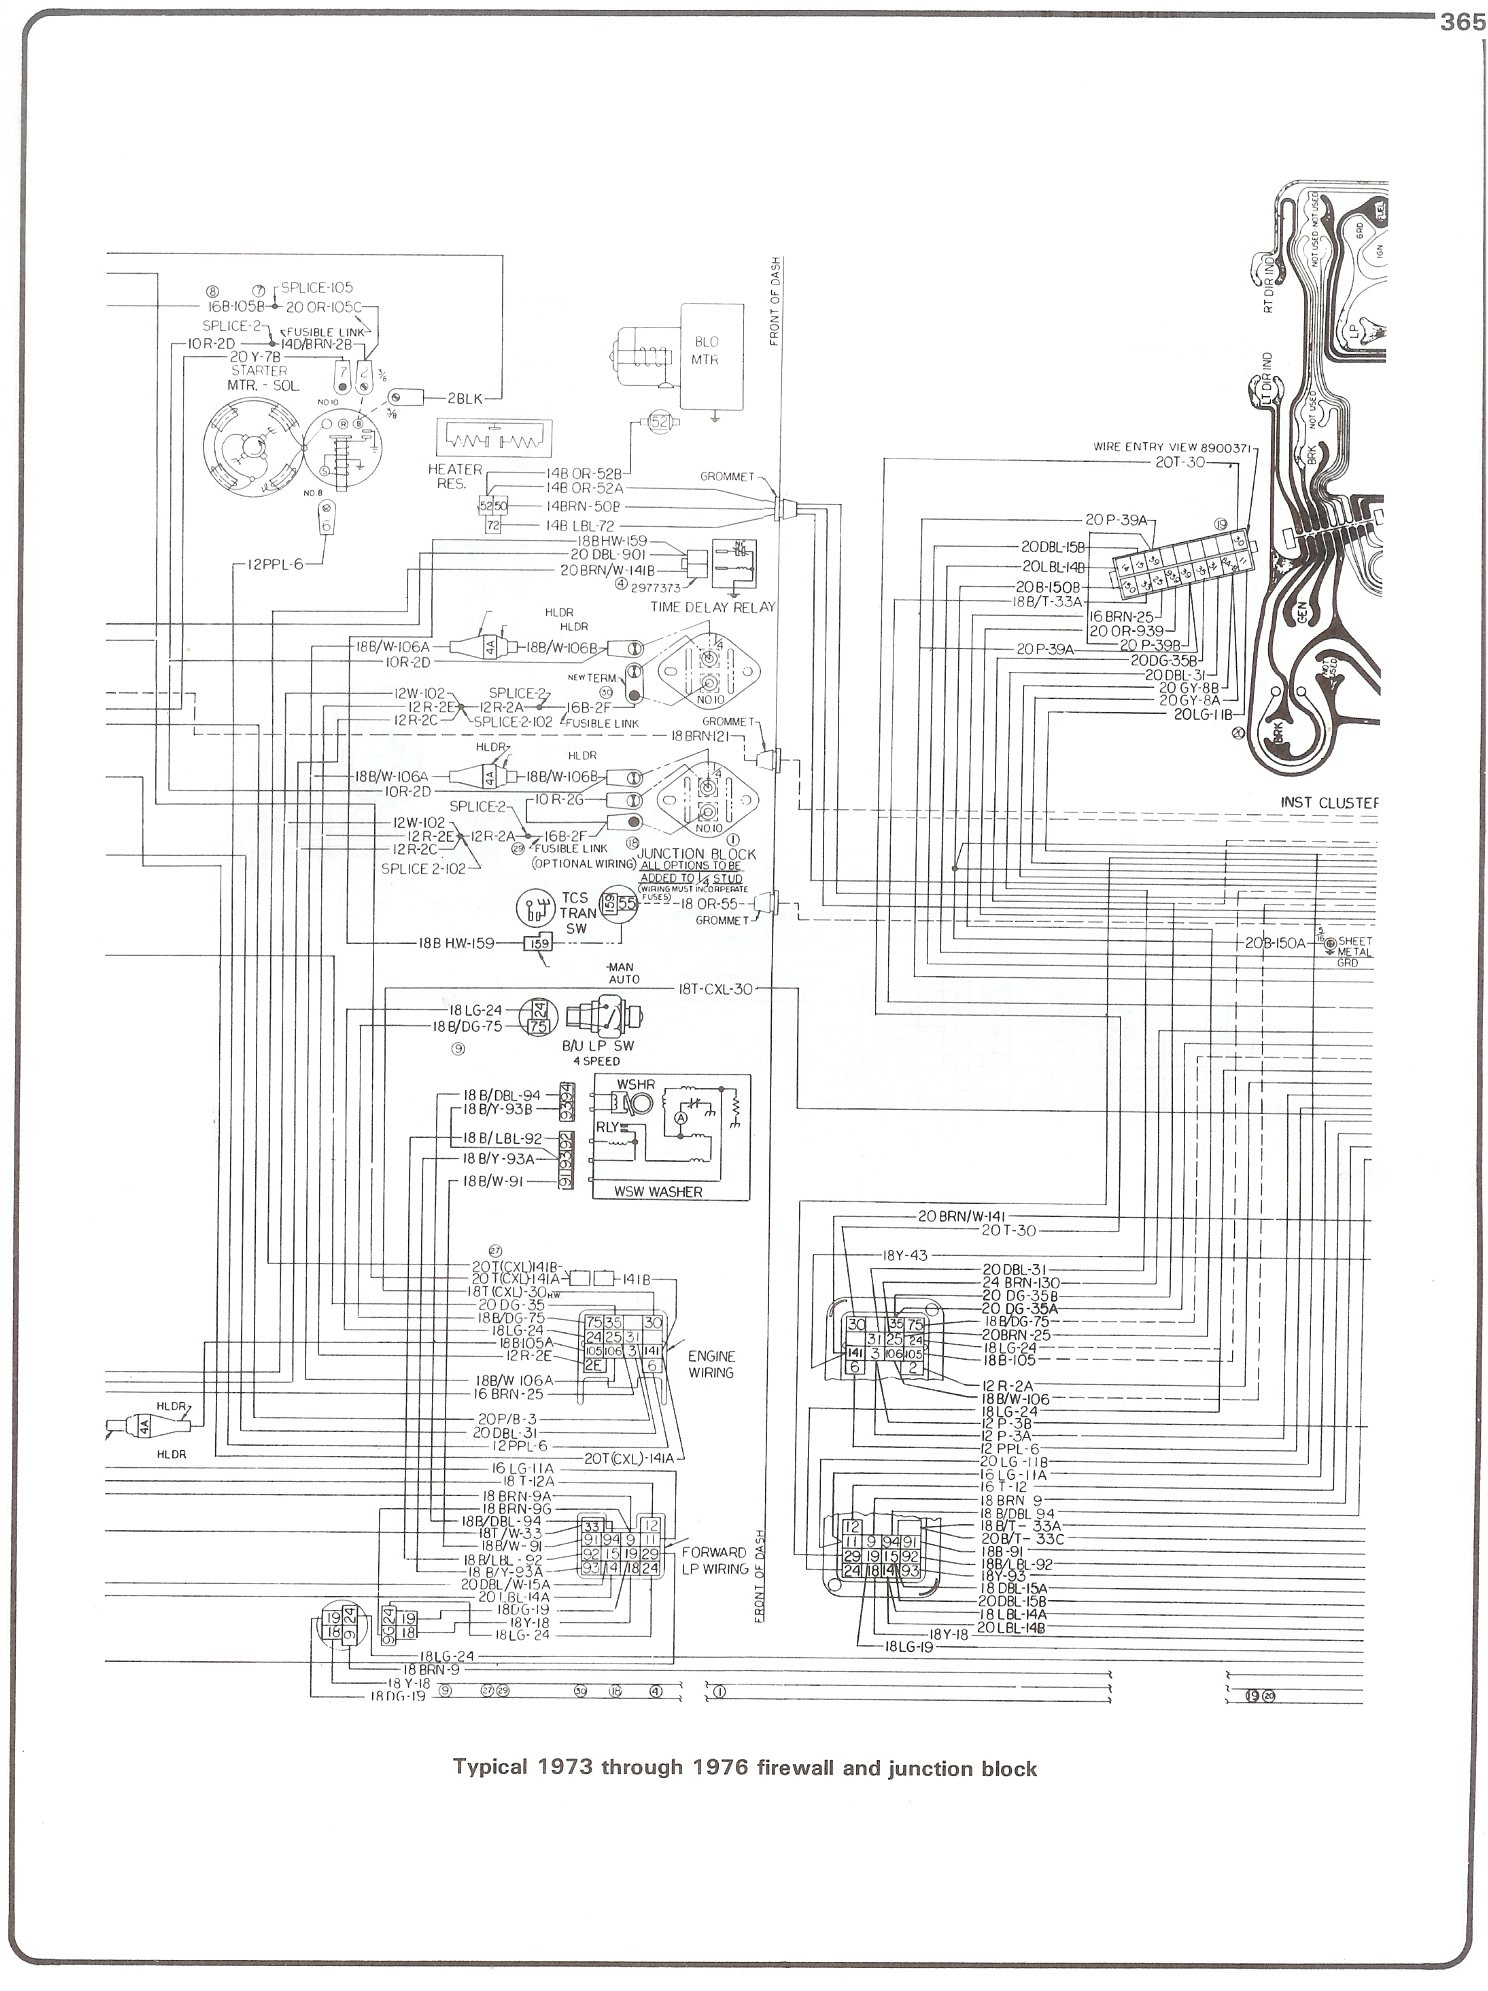 87 c10 wiring diagram complete 73-87 wiring diagrams 87 ford wiring diagram